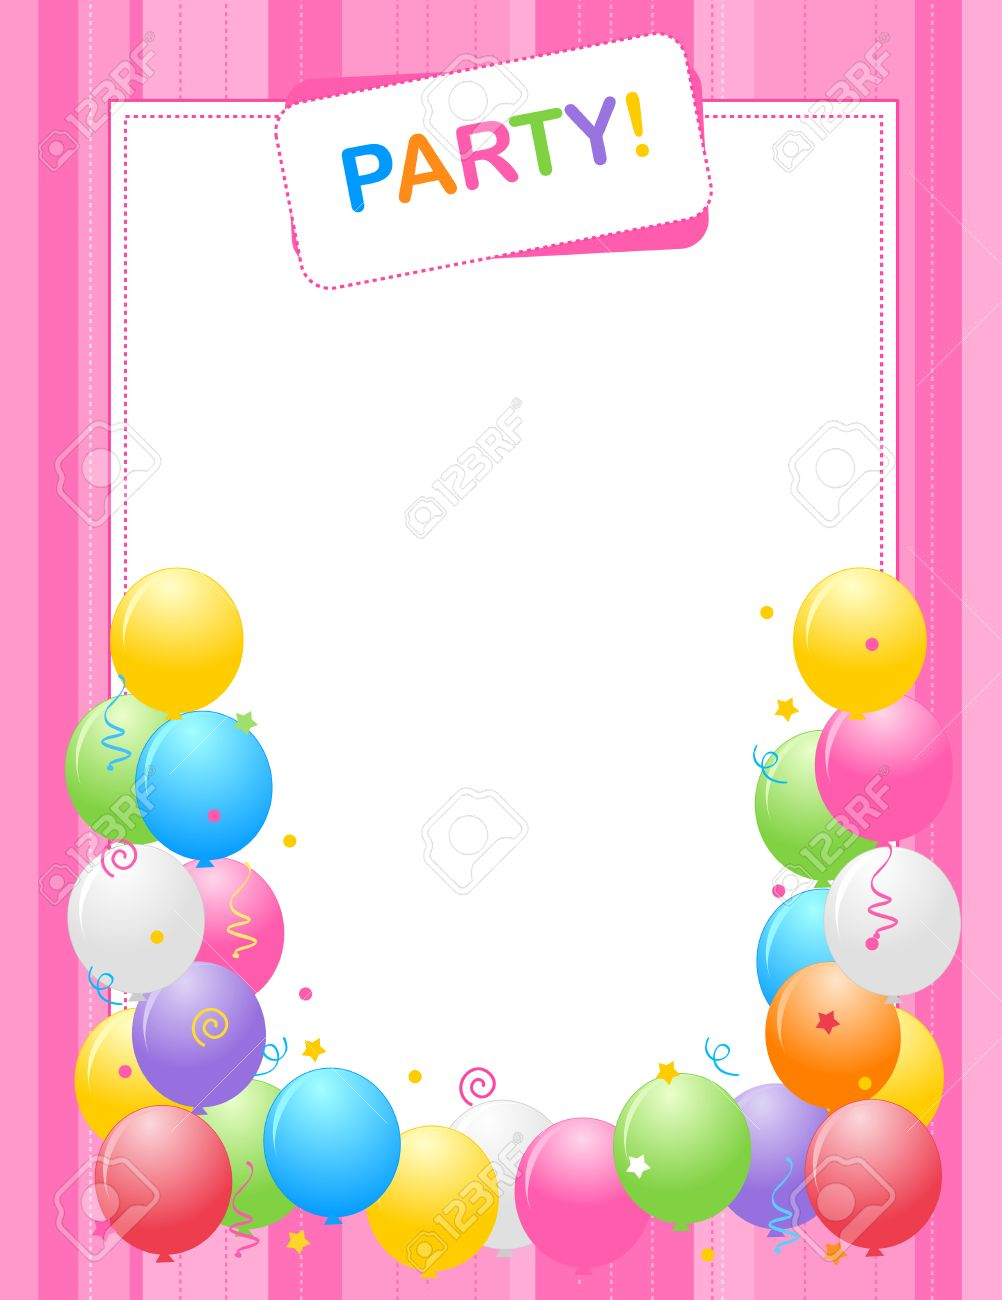 border birthday card ; 38908538-colorful-balloons-border-frame-illustration-for-birthday-cards-and-party-invitation-backgrounds-pink-Stock-Photo